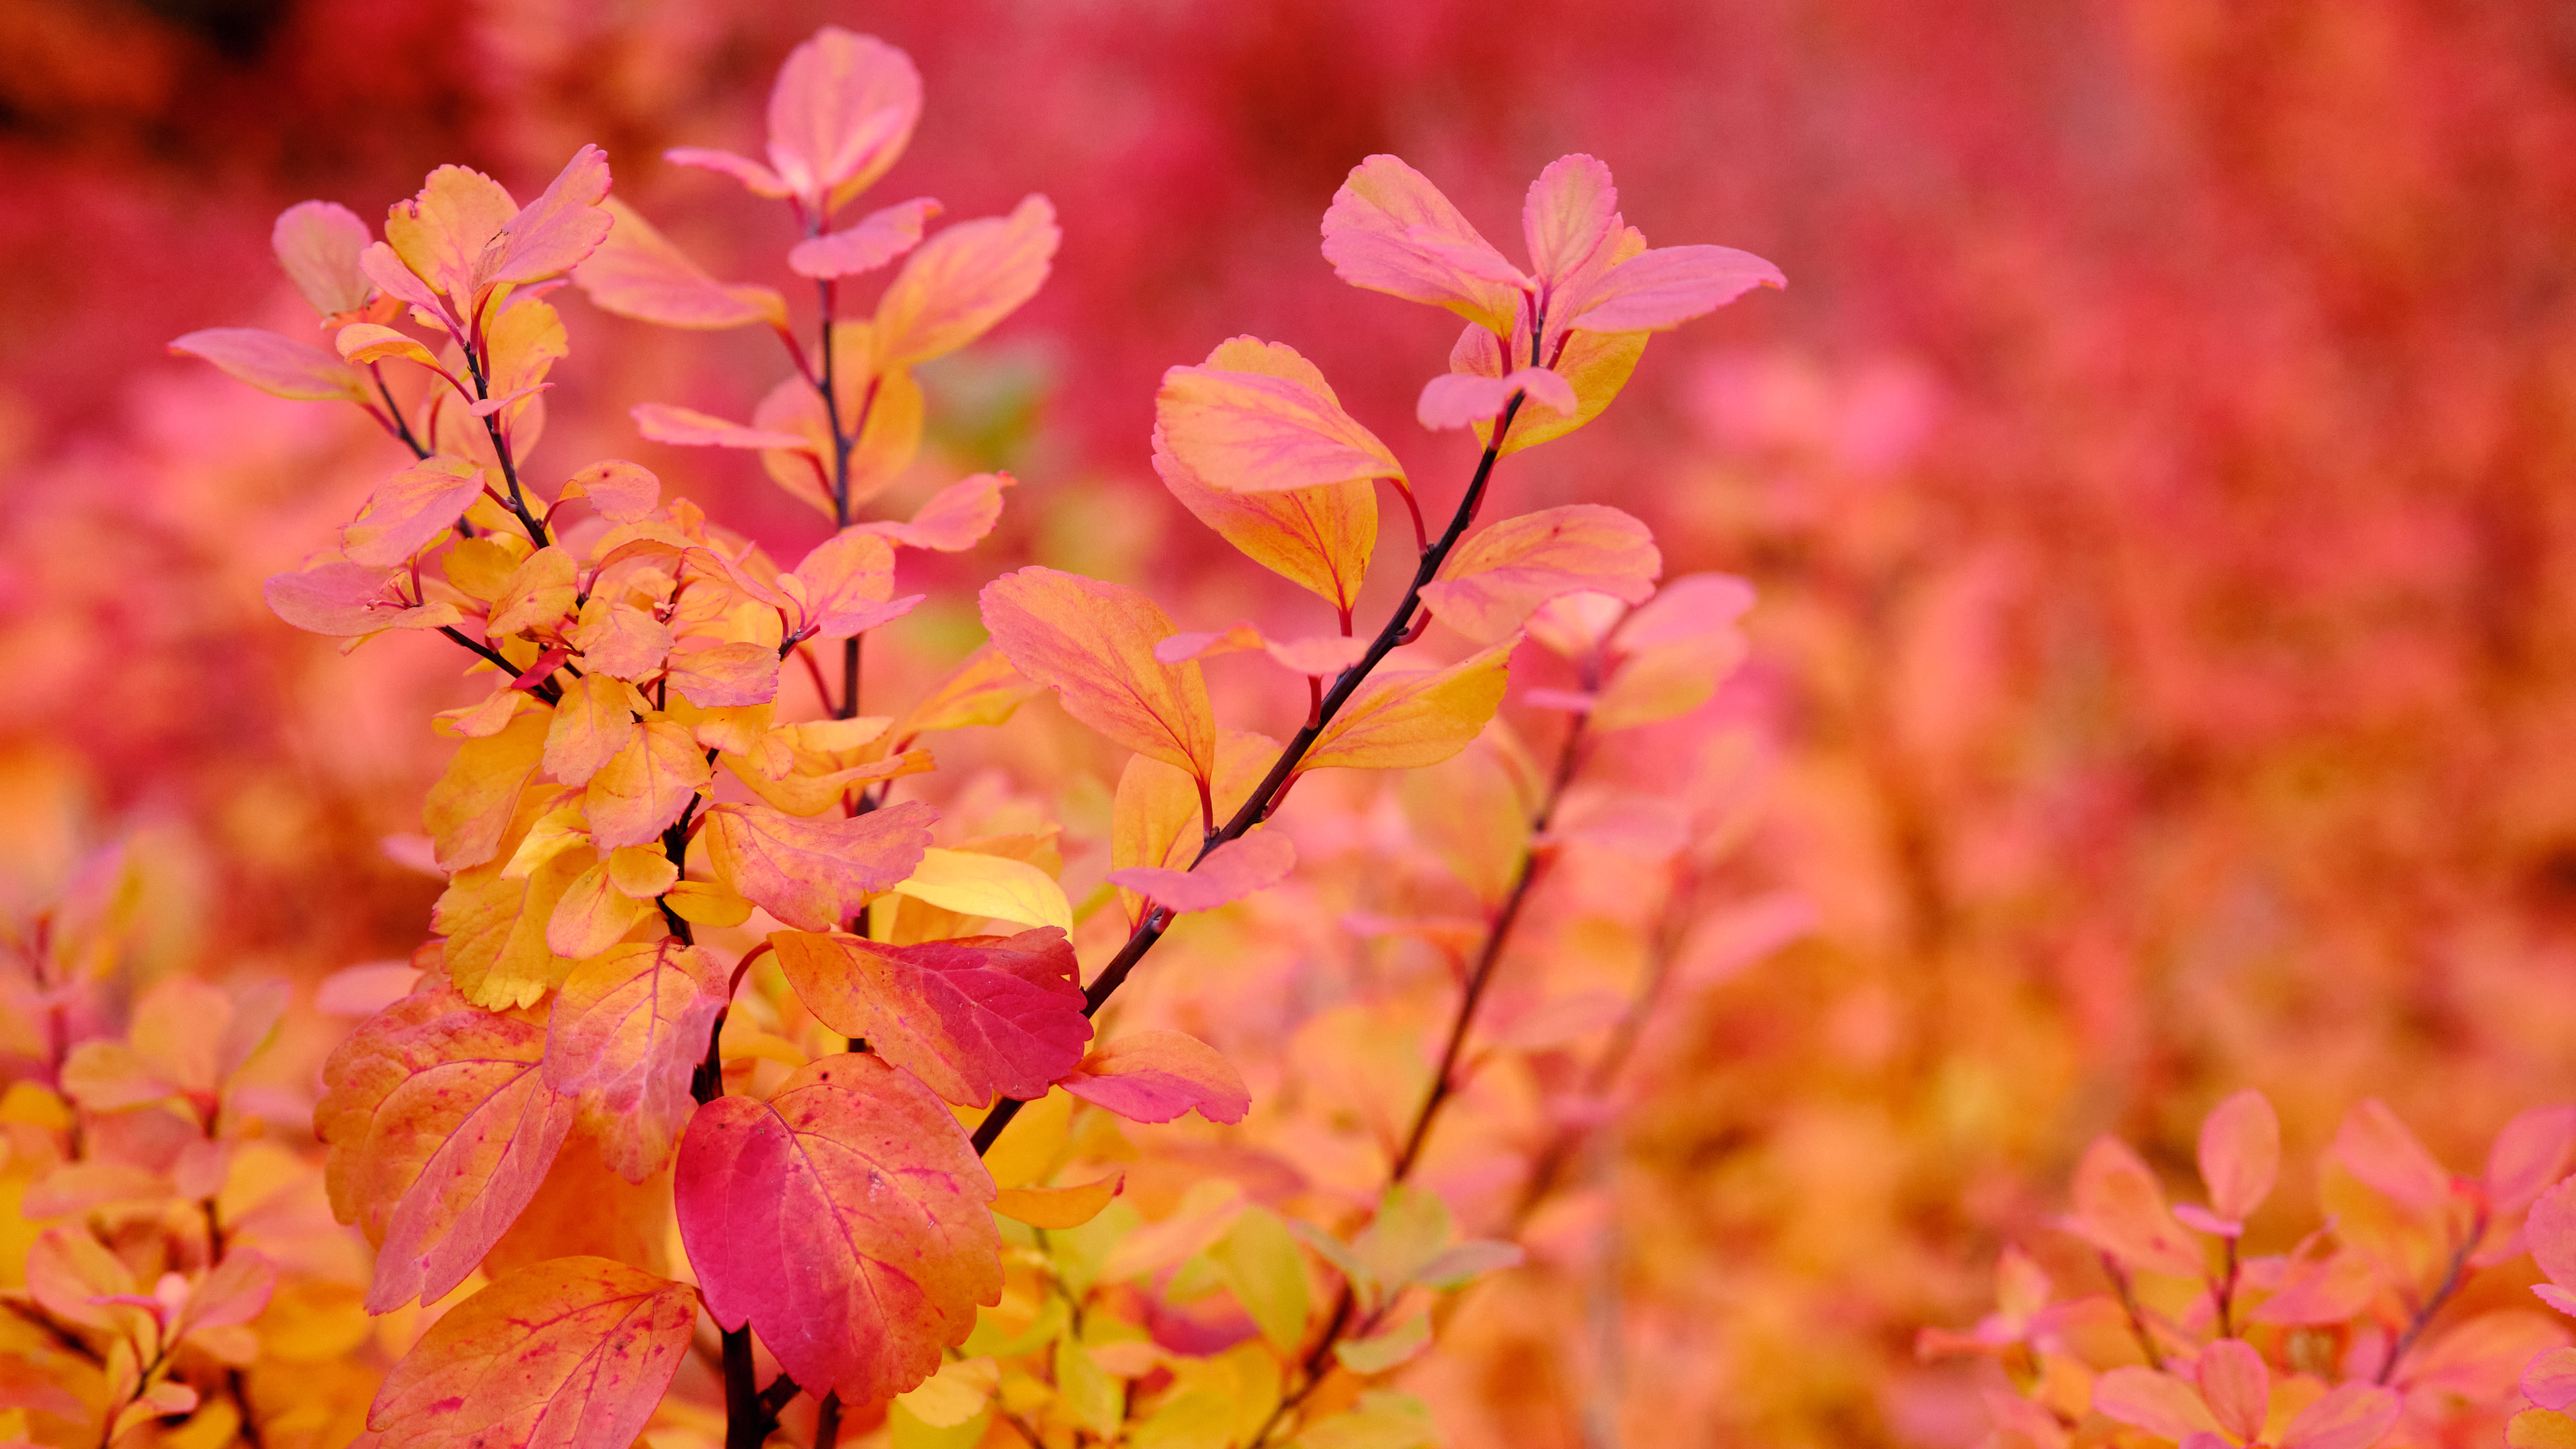 a red-orange color wash, from a sea of autumn-colored leaves on some bush or shrub